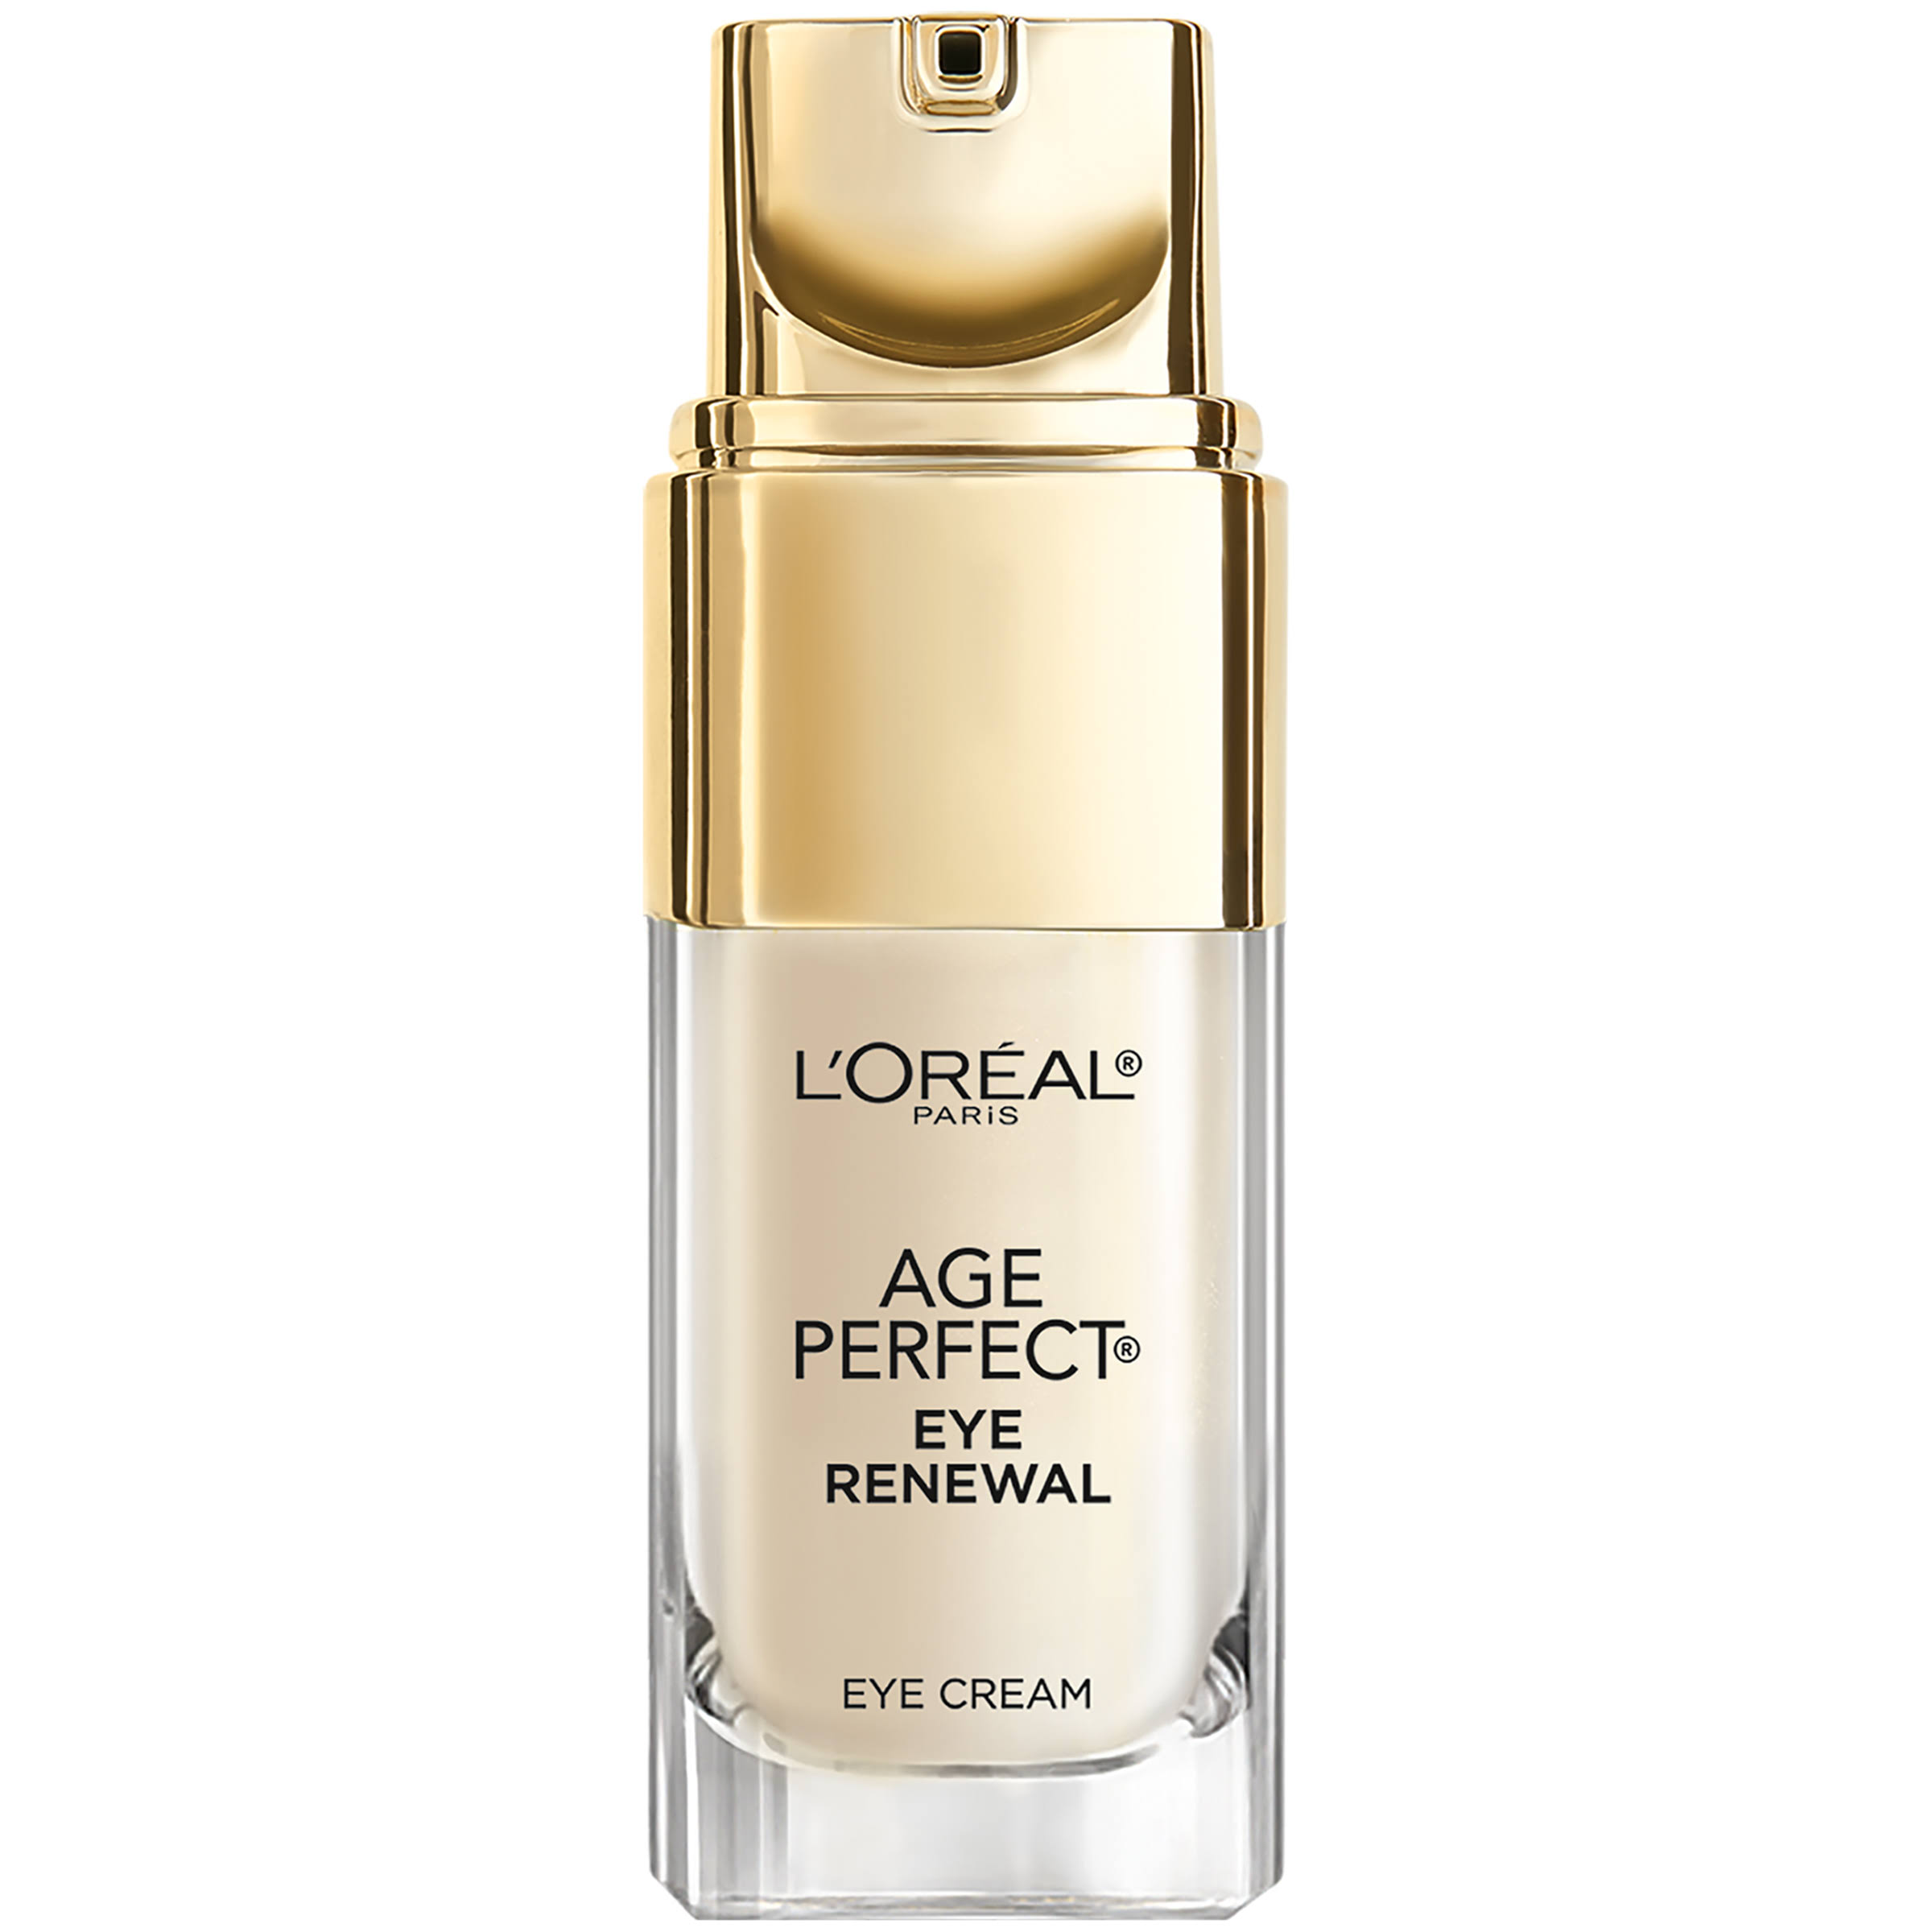 L'Oréal Age Perfect Eye Renewal Cream - 0.5oz